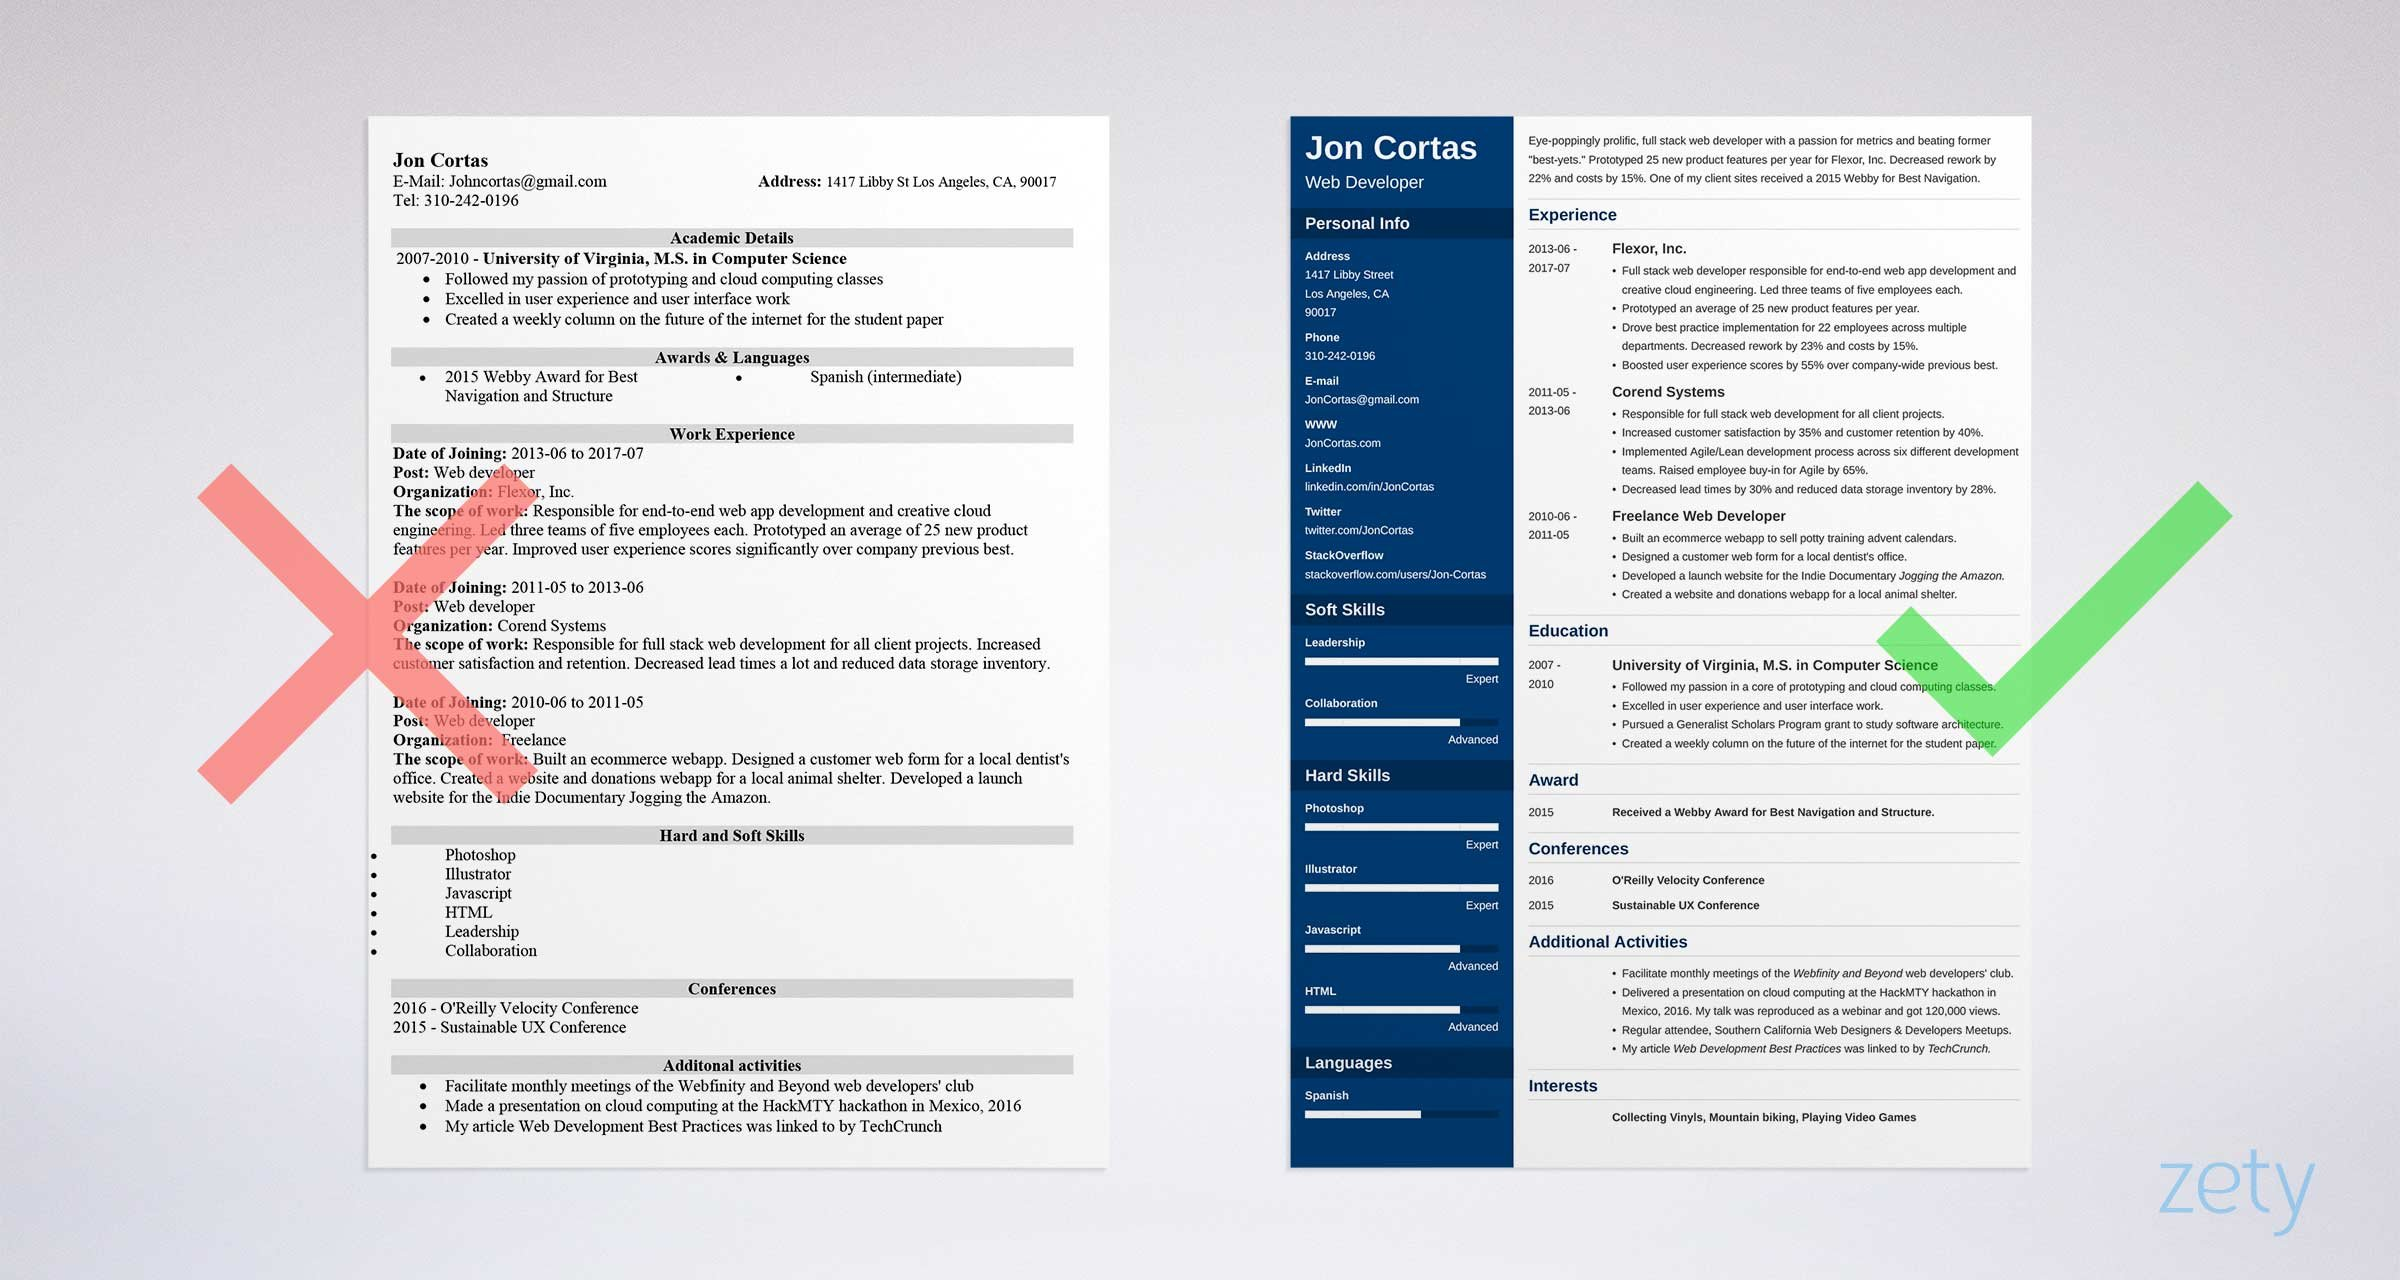 Professional resume templates 15 to download and use right away wrong vs right professional resume templates thecheapjerseys Choice Image